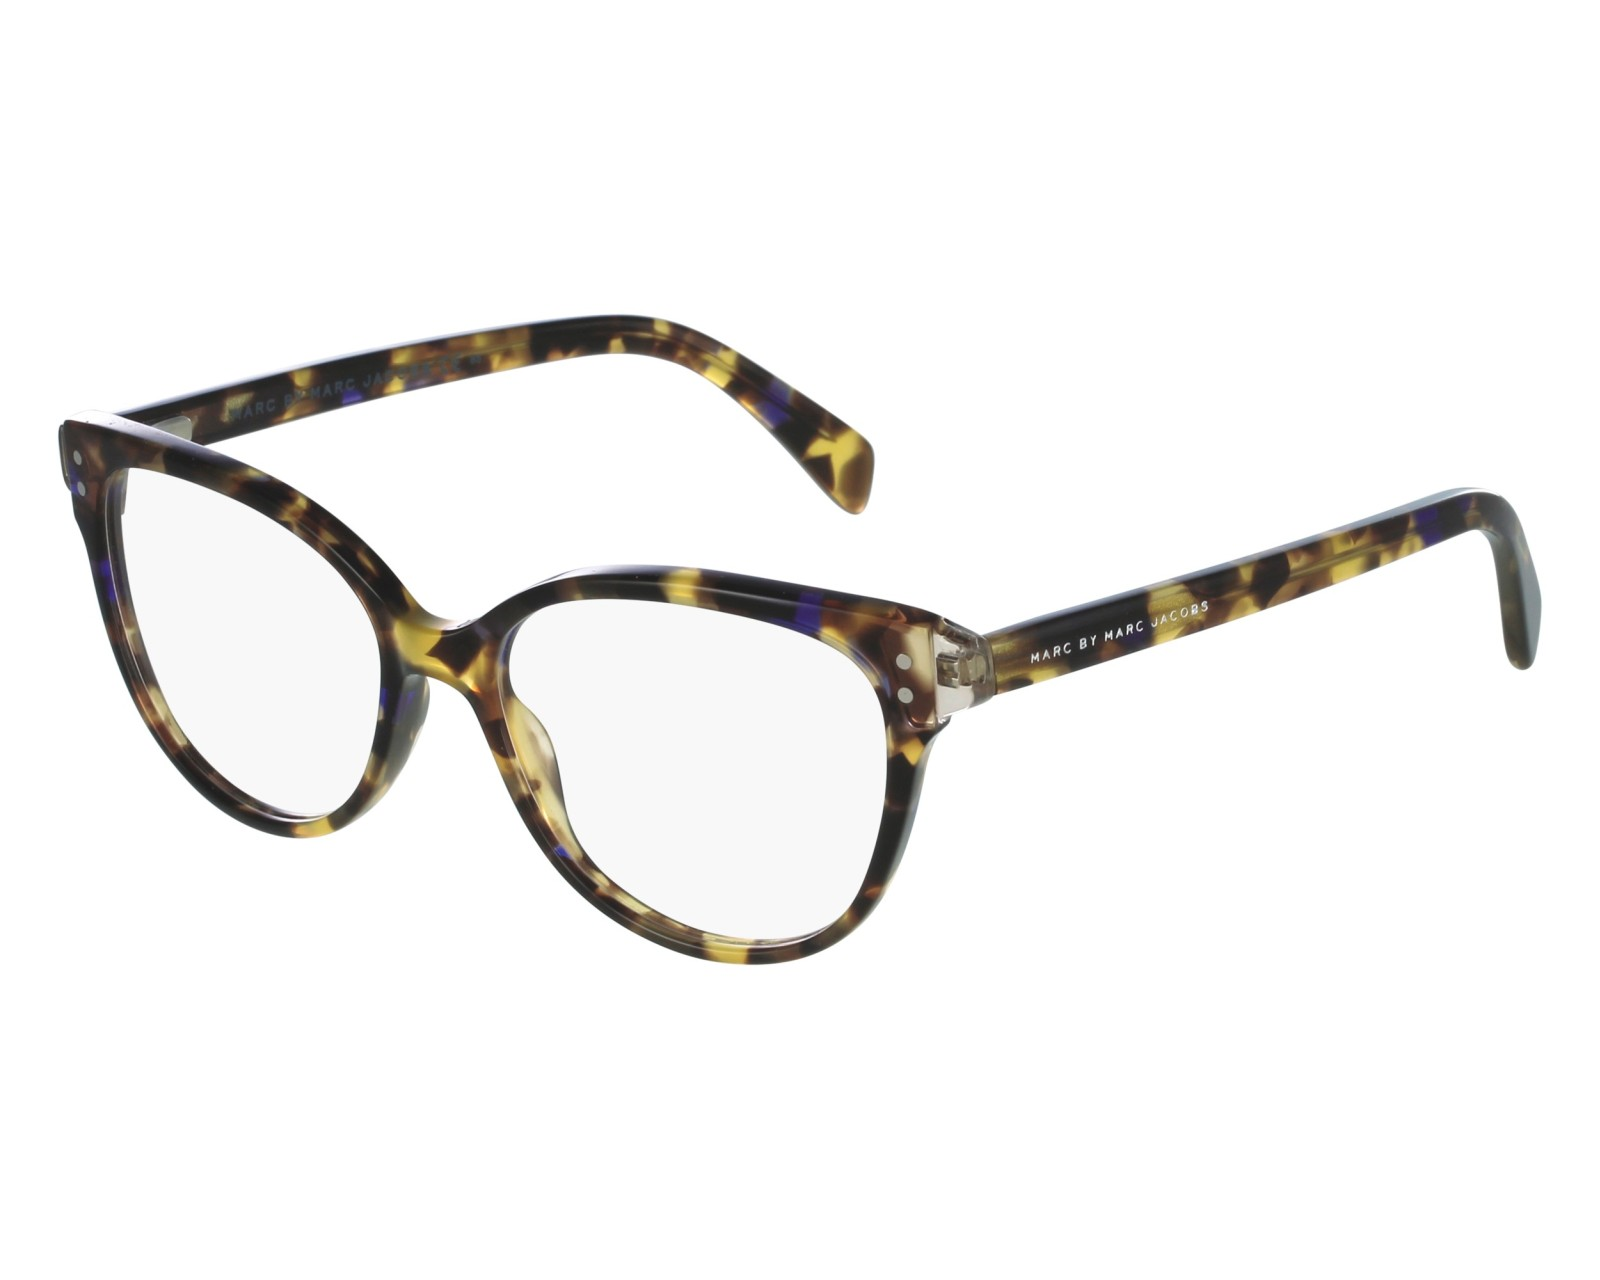 ae47058e3c70f eyeglasses Marc by Marc Jacobs MMJ-632 A8T - Brown Purple front view